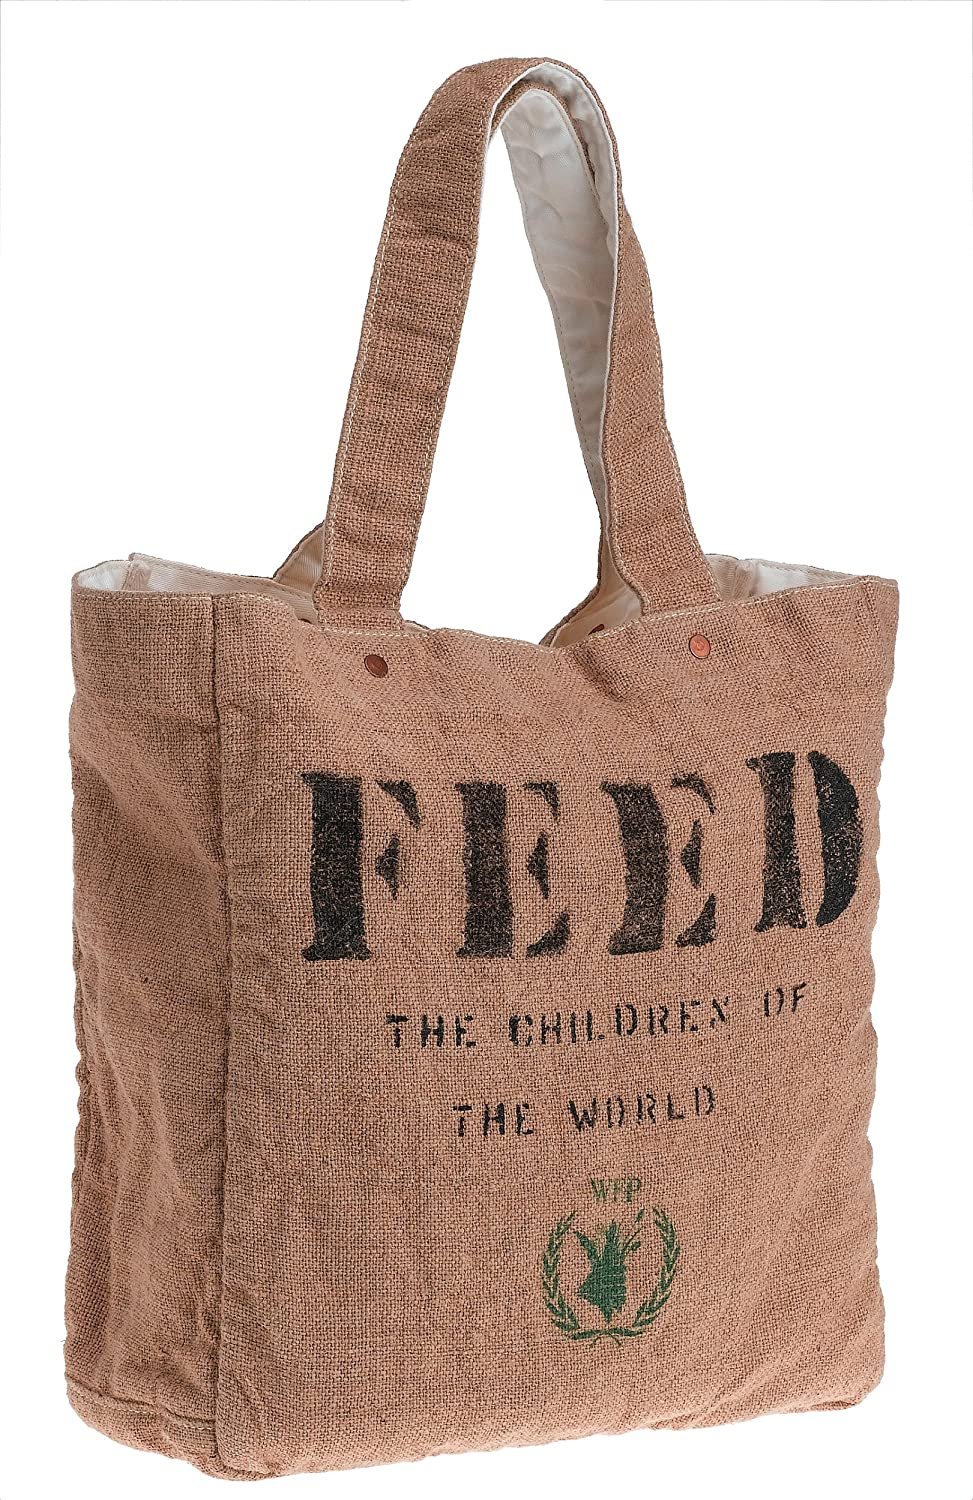 World Food Programme Feed Bag - Free Overnight Shipping &amp; Return Shipping: Endless.com from endless.com